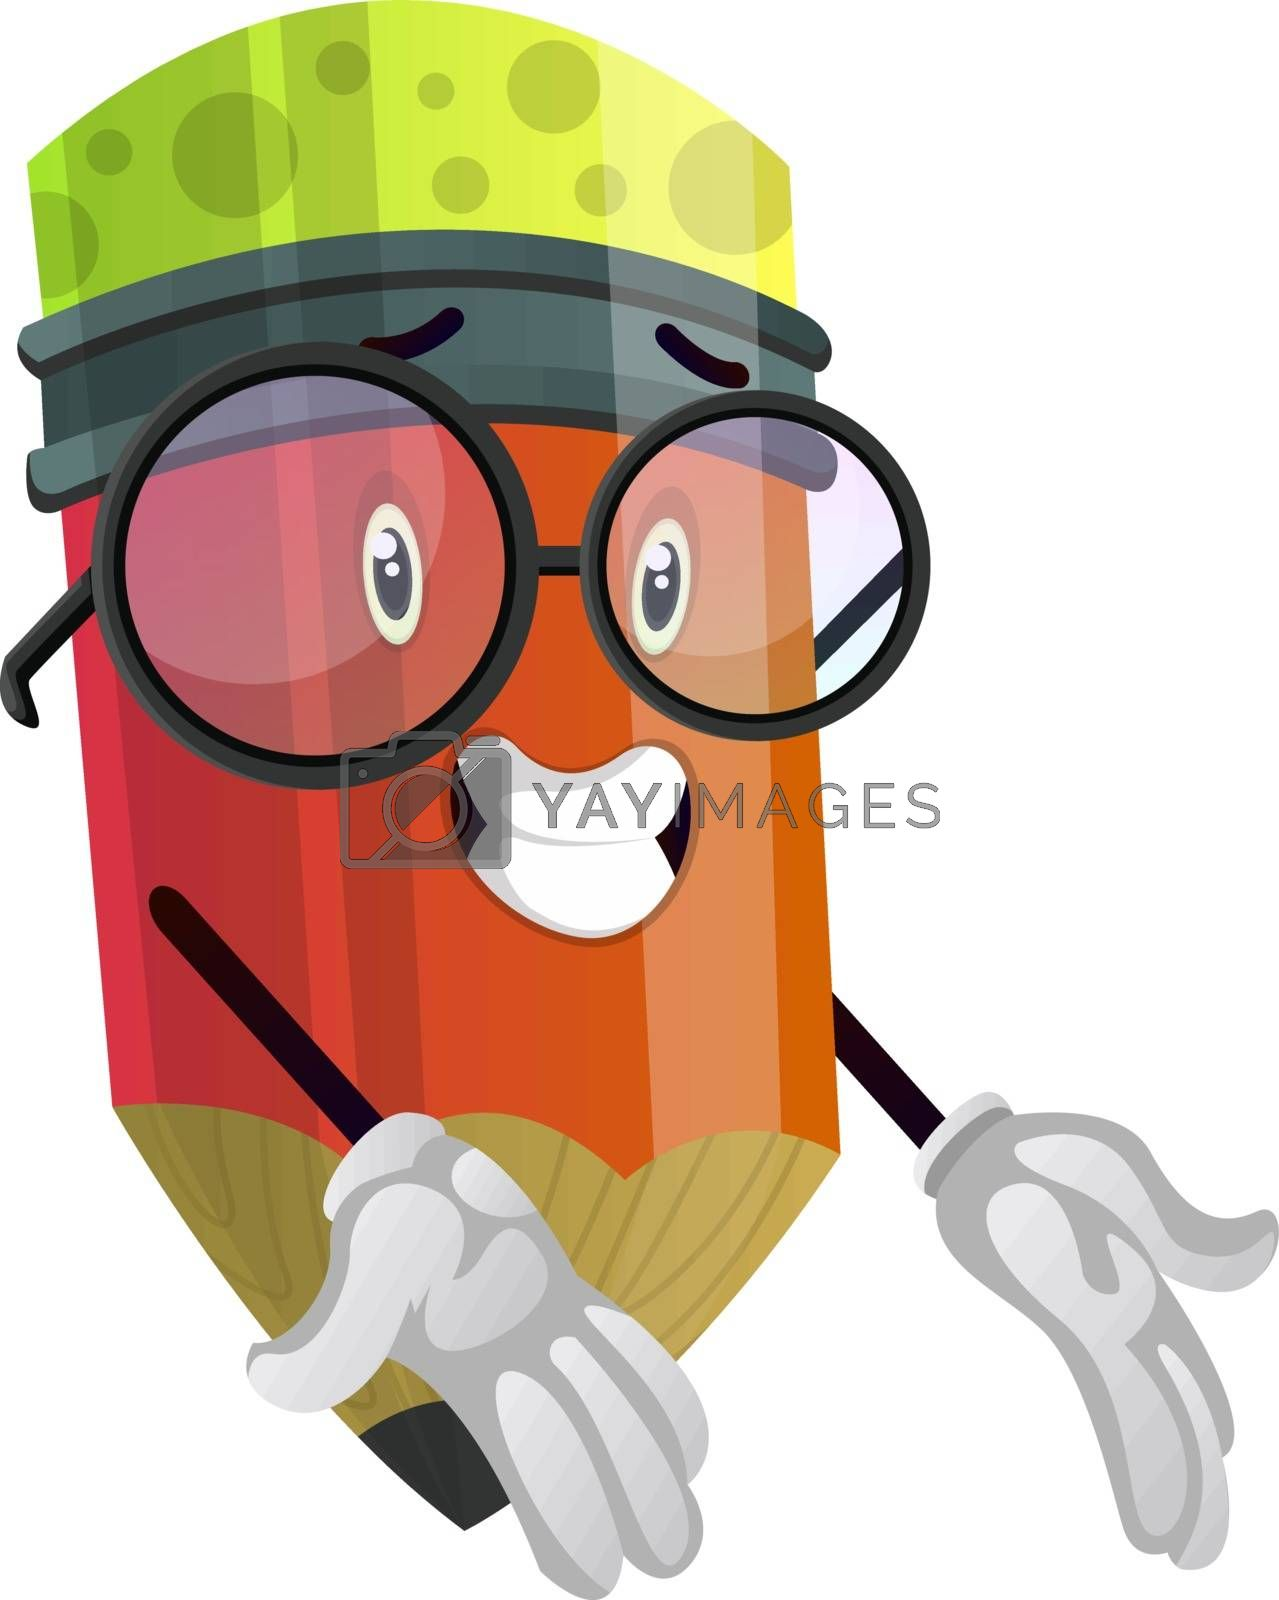 Royalty free image of Pencil looks confused illustration vector on white background by Morphart